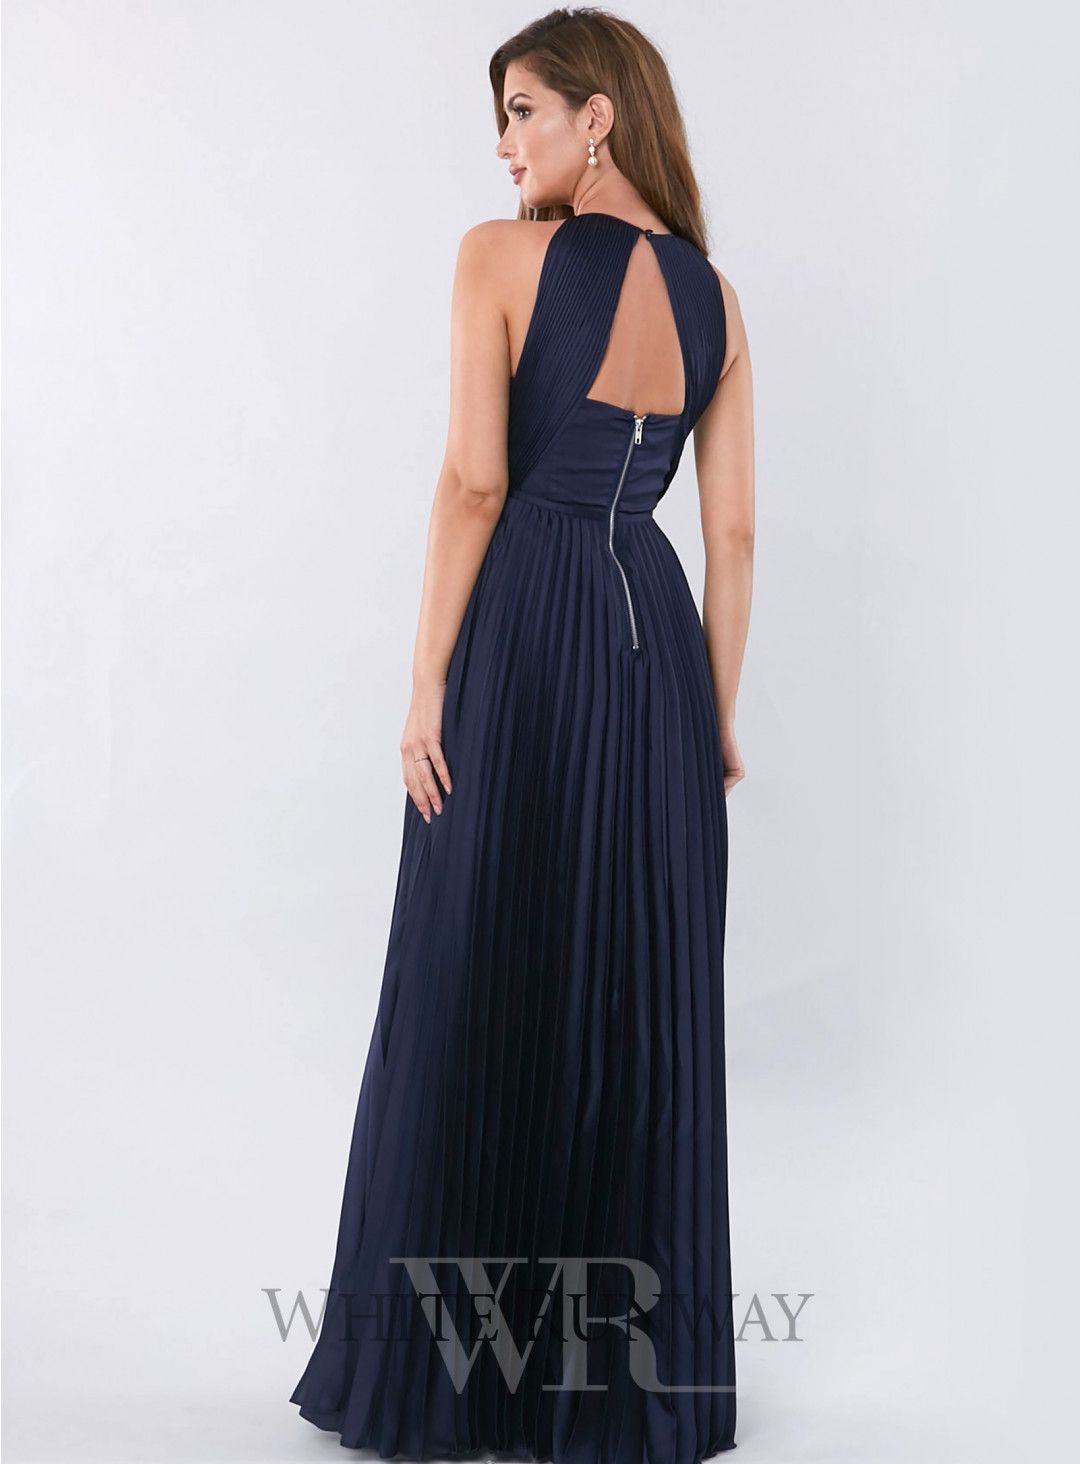 Status gown a stunning full length gown by grace u hart a high